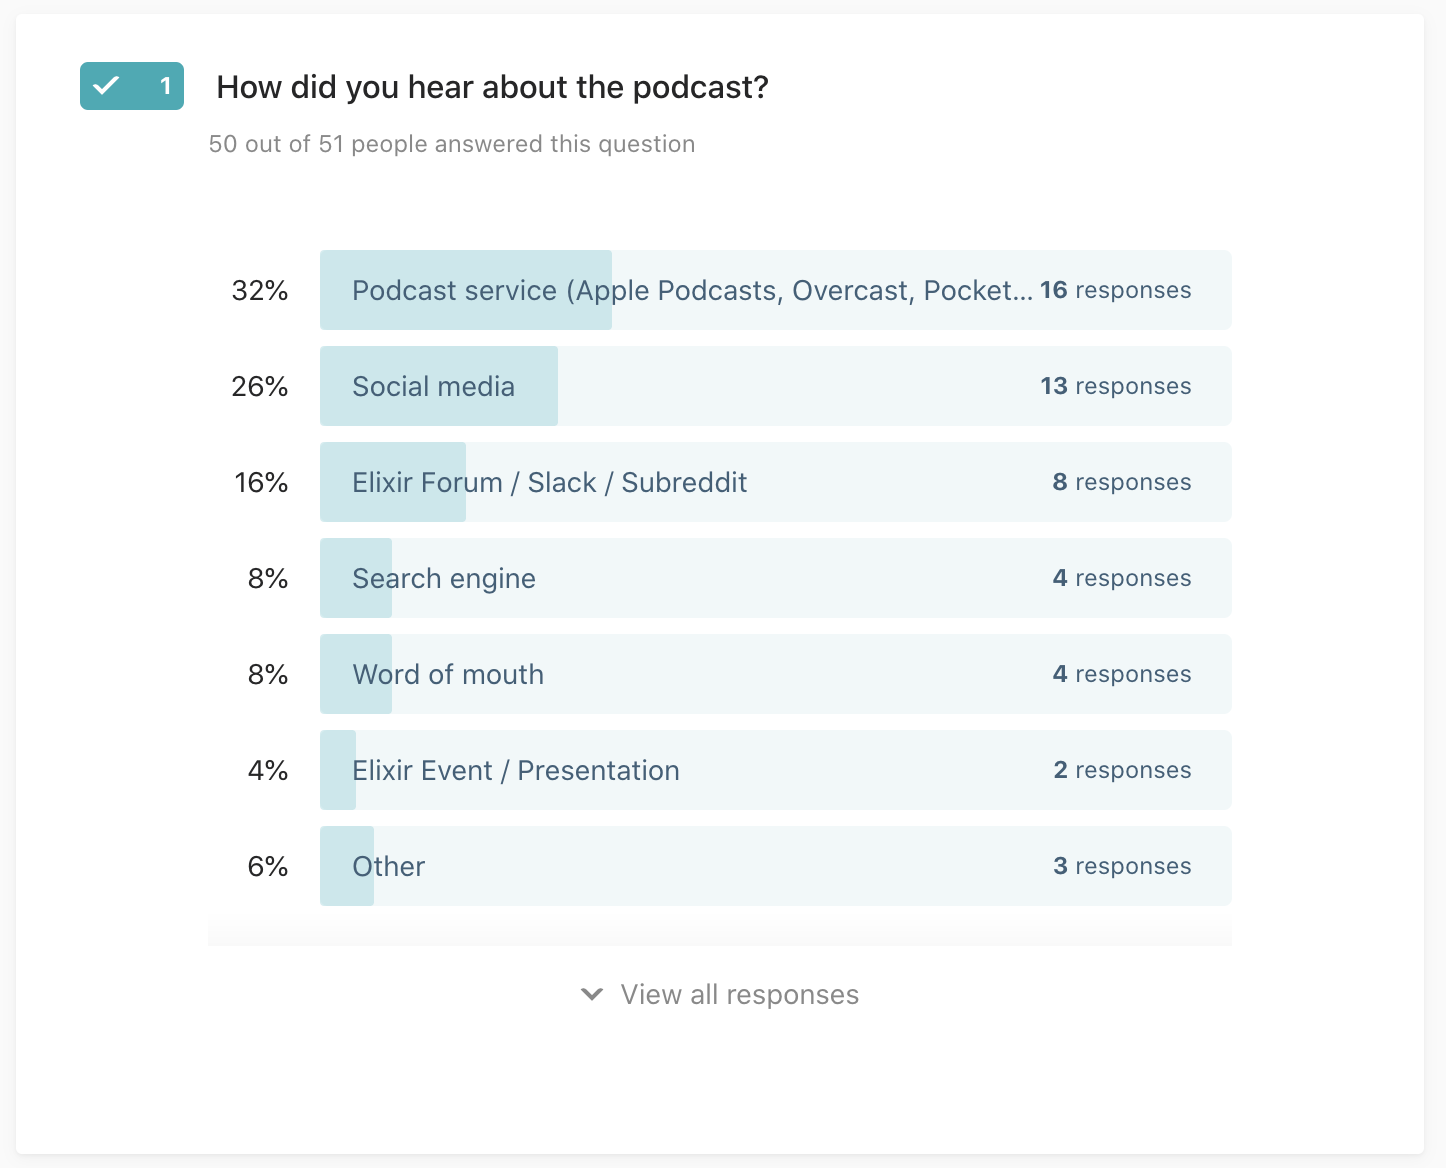 """Picture of a survey question """"How did you hear about the podcast?"""" with responses: 33% podcast service, 26% social media, 16% Elixir forum/slack/subreddit, 8% search engine, 8% word of mouth"""